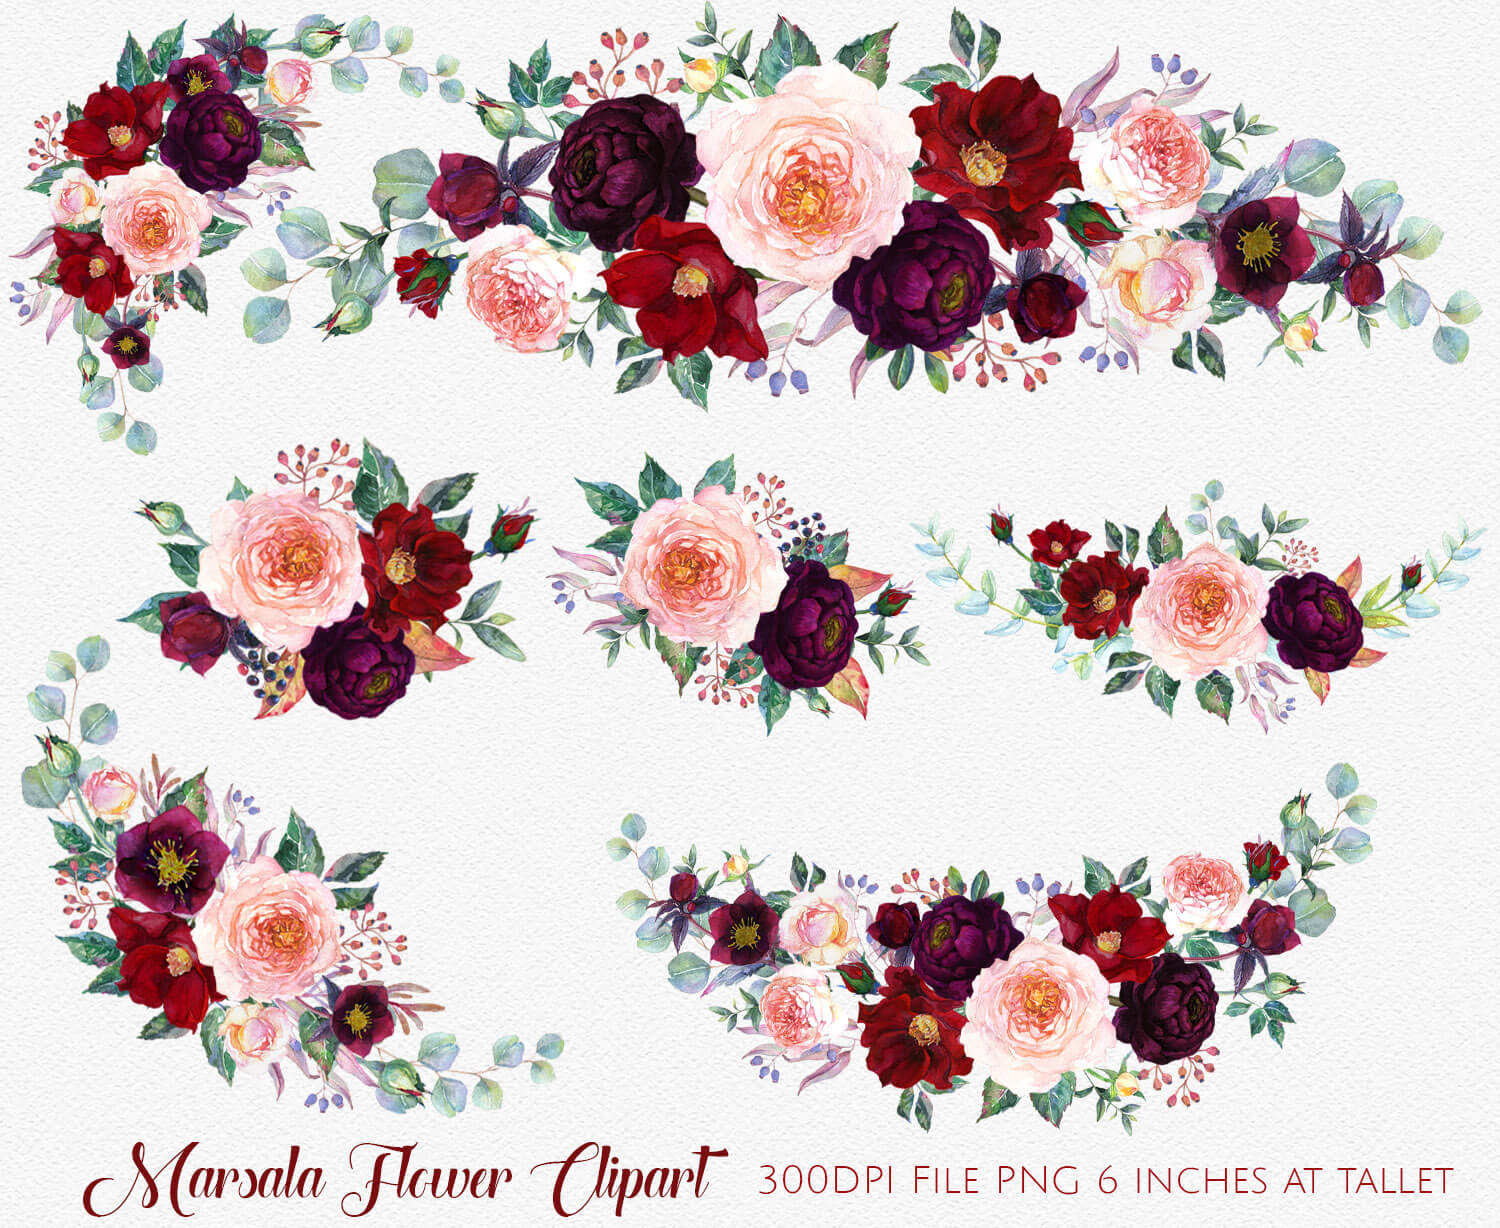 Marsala Clipart, Marsala and Navy Watercolor Flower, Marsala Floral  Clipart, Burgundy Red Navy Bouquets Watercolor Flower Clipart.